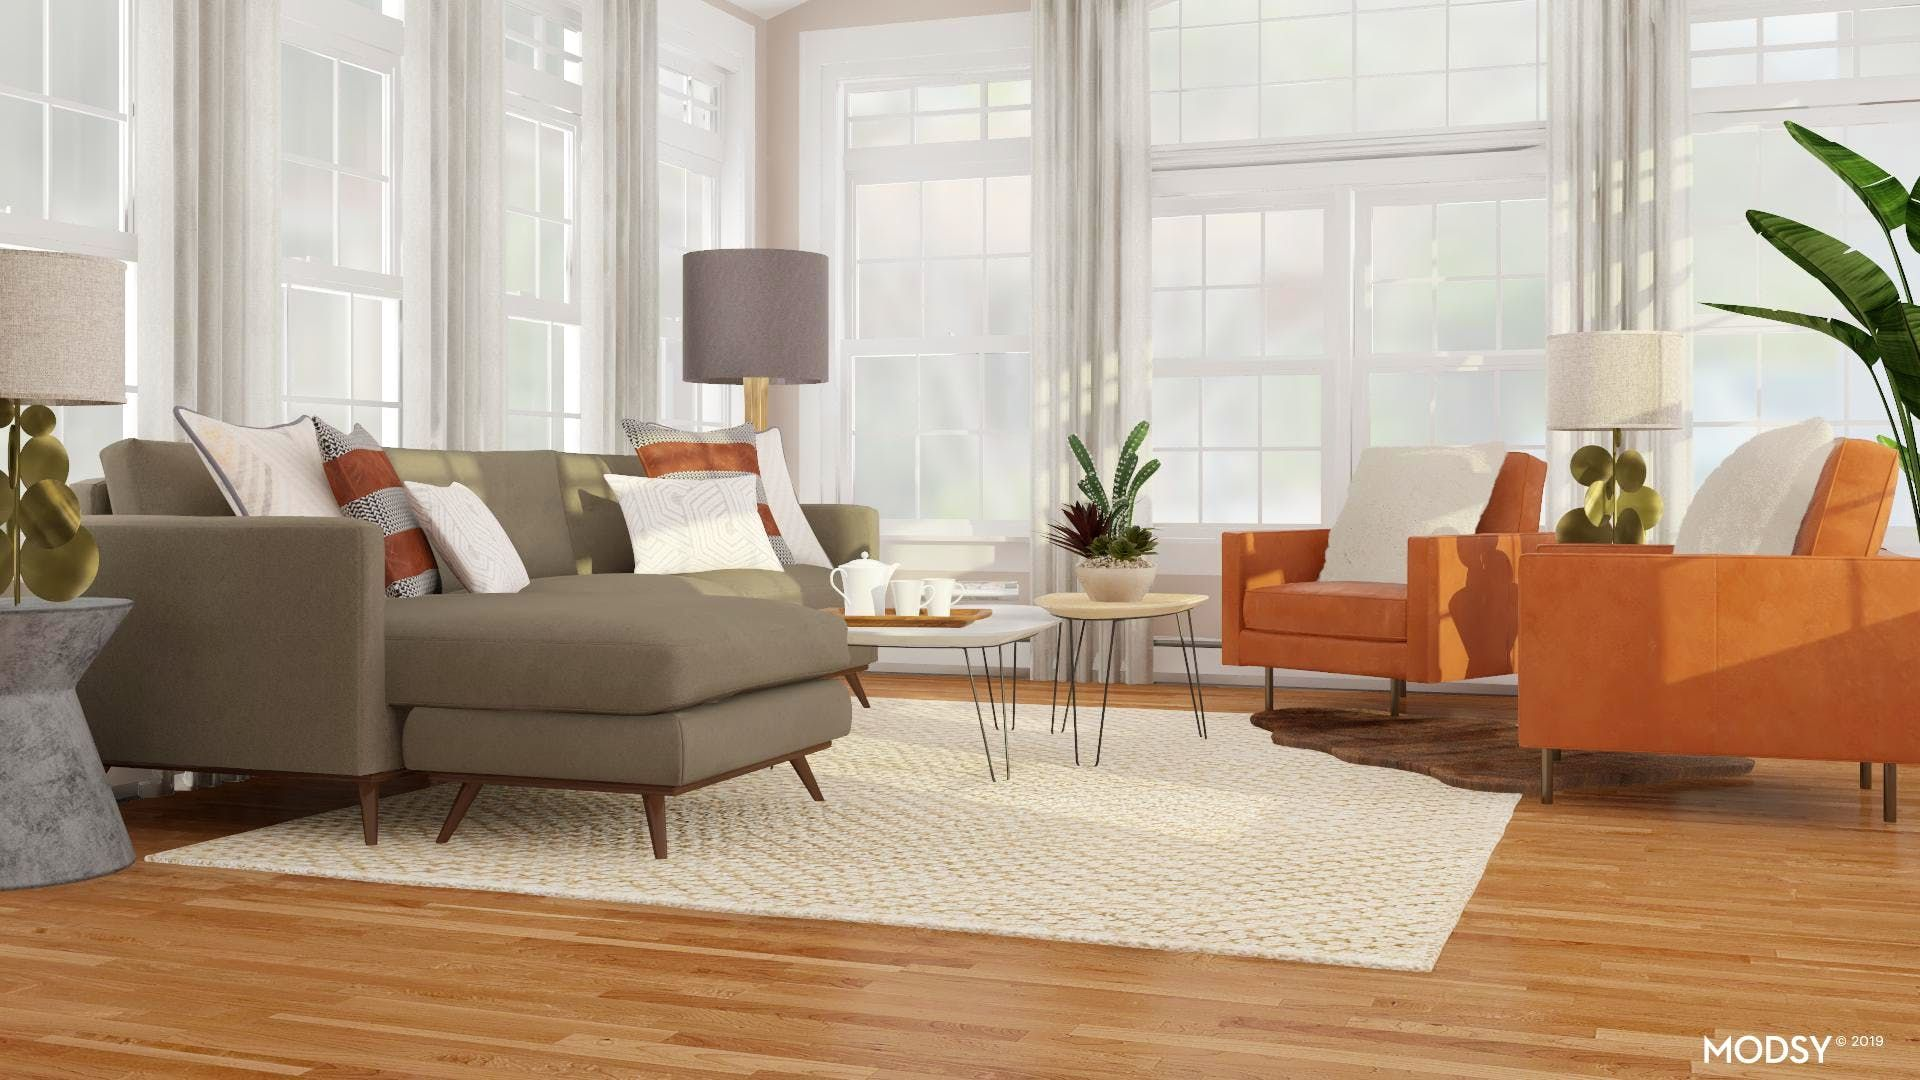 Find Living Room Design Ideas At Modsy In 2020 Modern Style Living Room Living Room Designs Living Room Design Modern